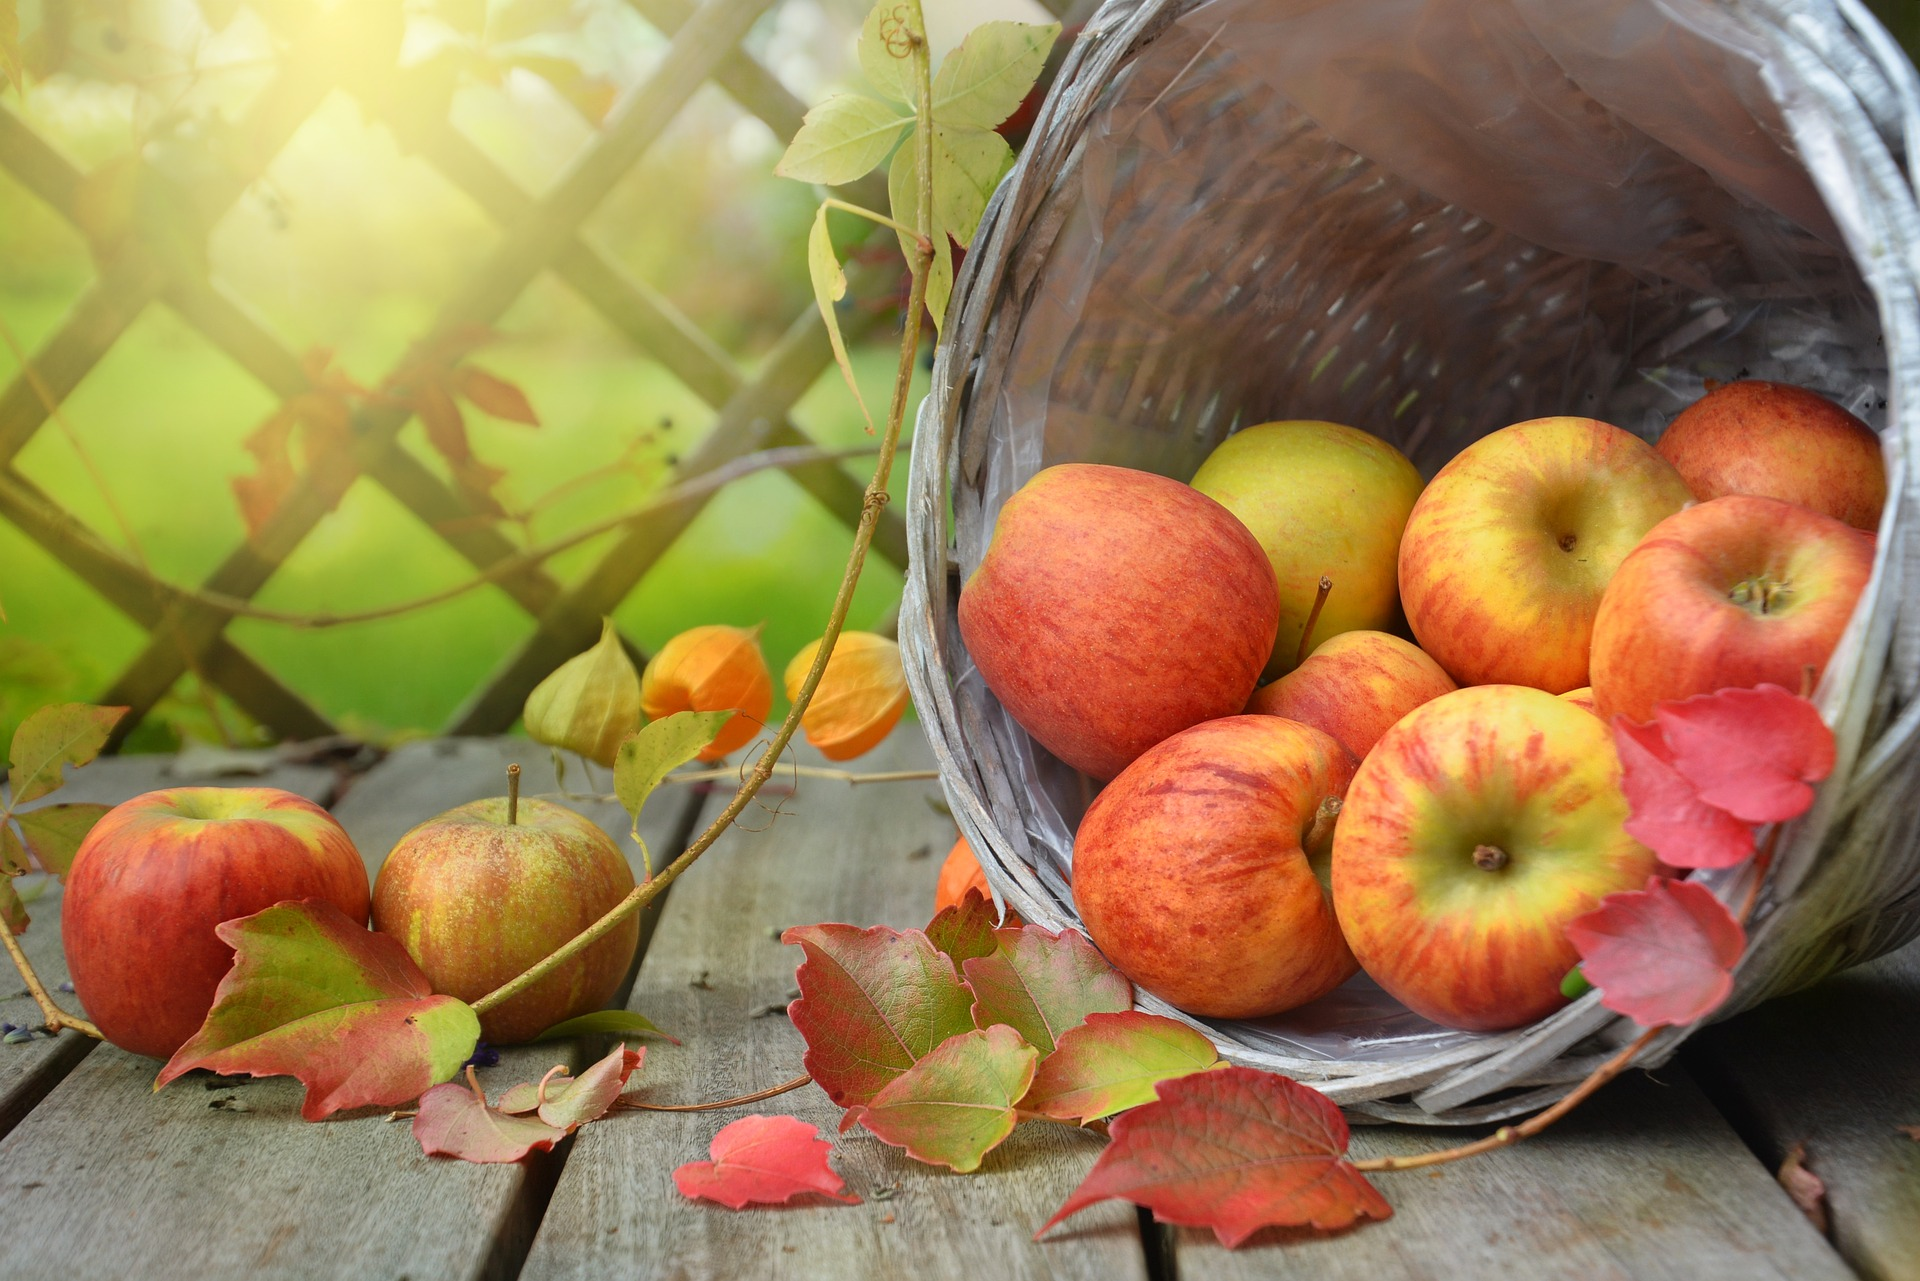 Apples in a bucket on a deck with autumn leaves surrounding them.